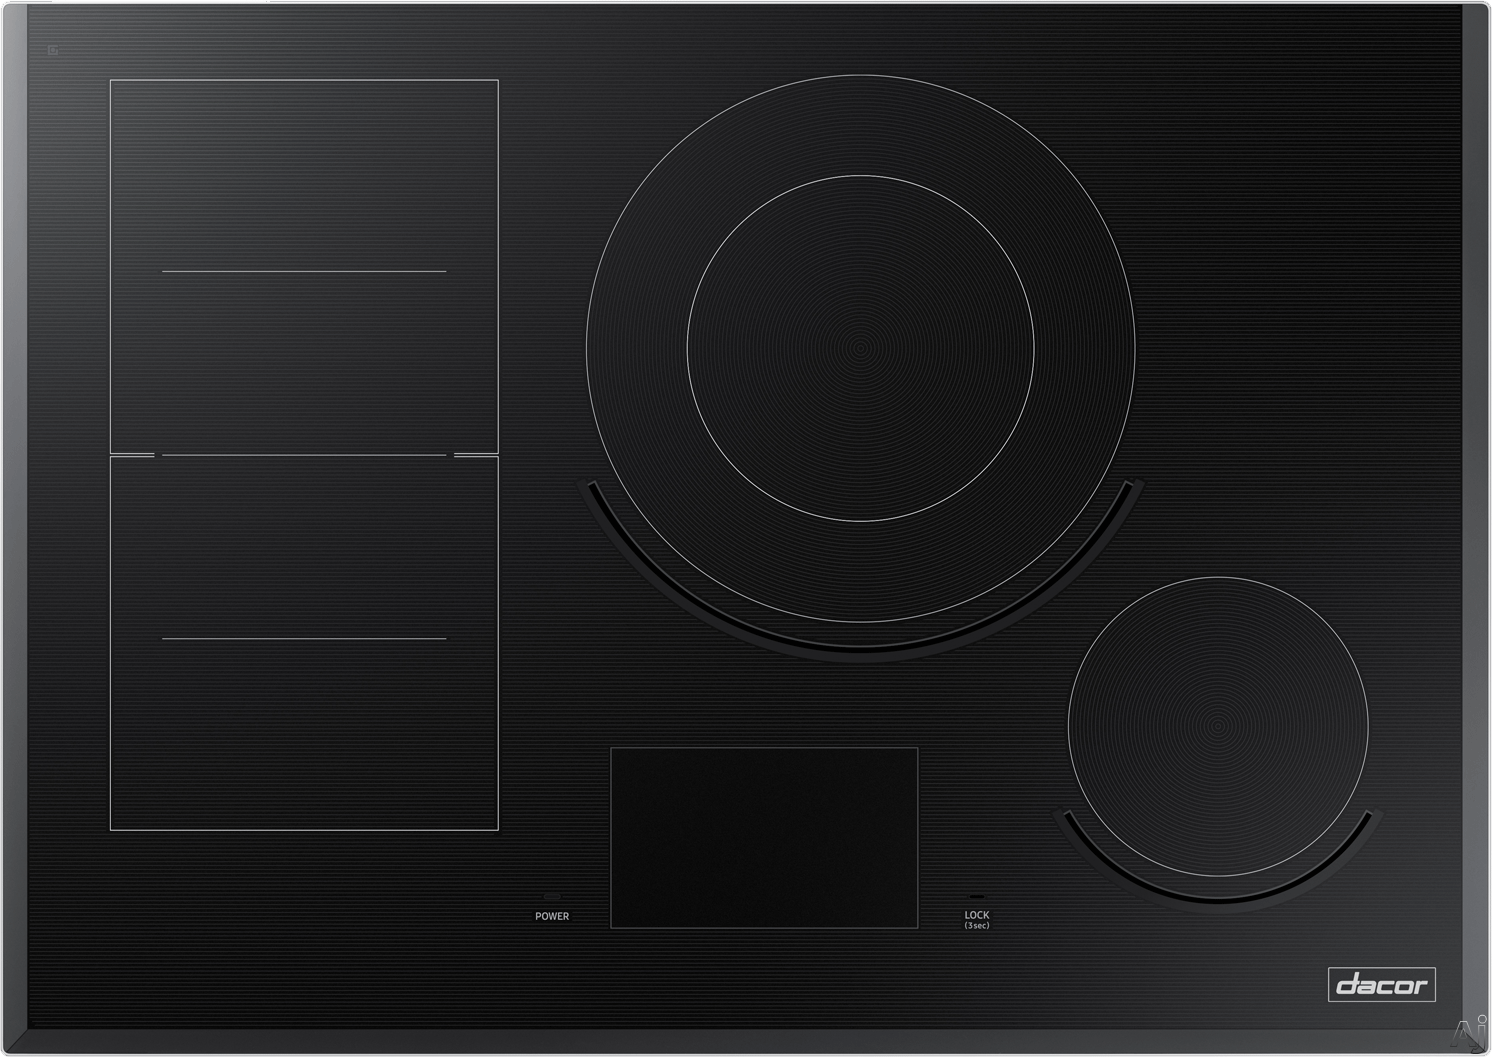 "Dacor Modernist DTI30M977BB 30 Inch Induction Cooktop with iQ Kitchen, Flex Zoneâ""¢, Virtual Flameâ""¢, Hot Surface Indicator, 6 Induction Zones, LCD Control Panel and Child Lock"